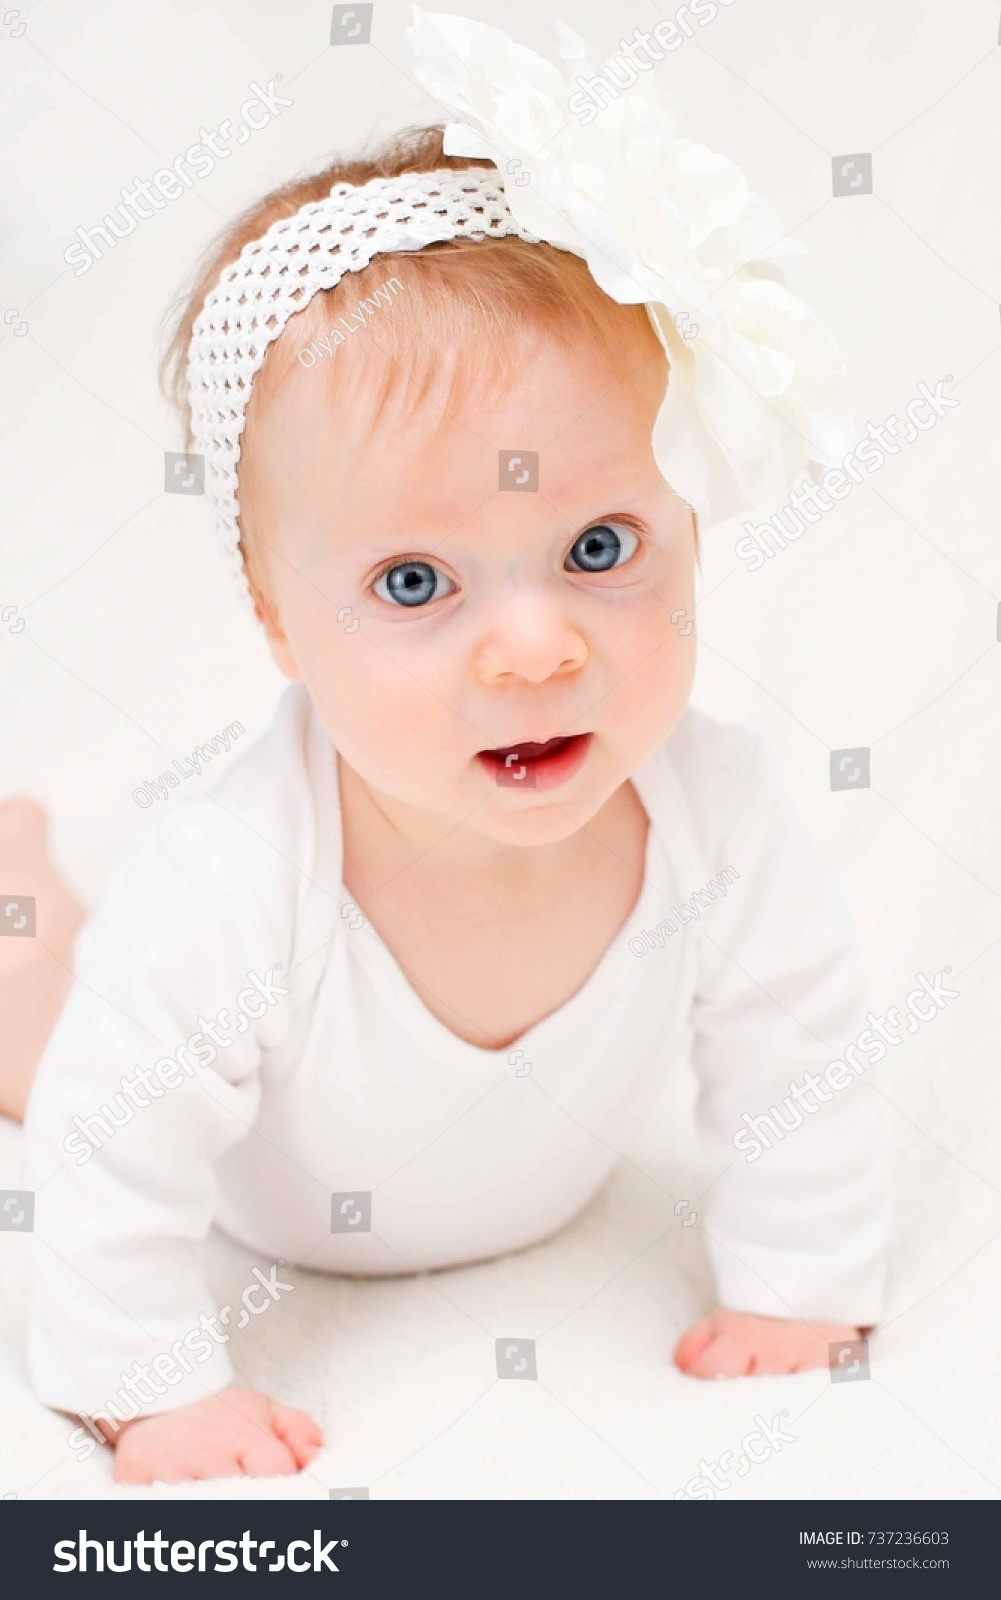 very cute blonde adorable baby girl stock photo (download now